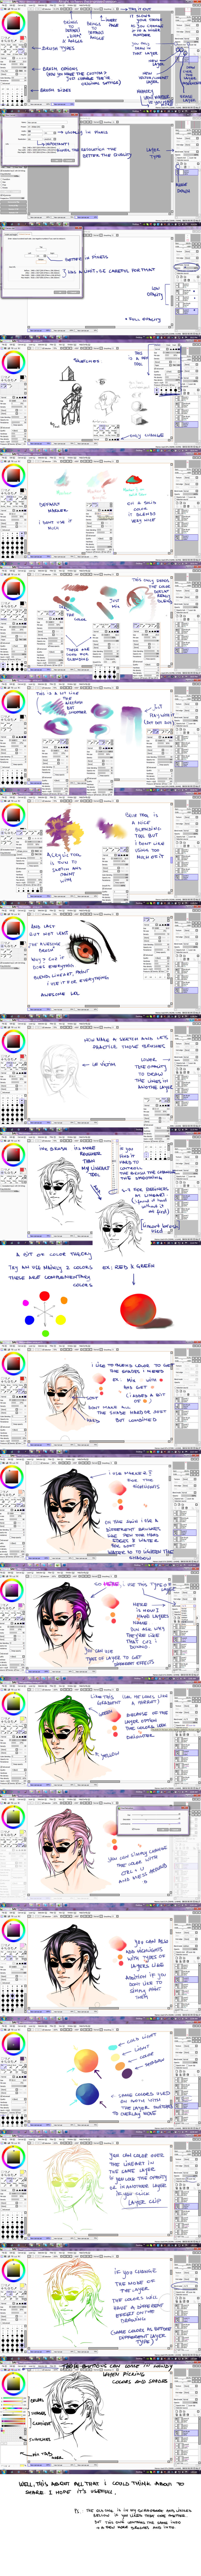 Sai paint tool tutorial by dAiwon